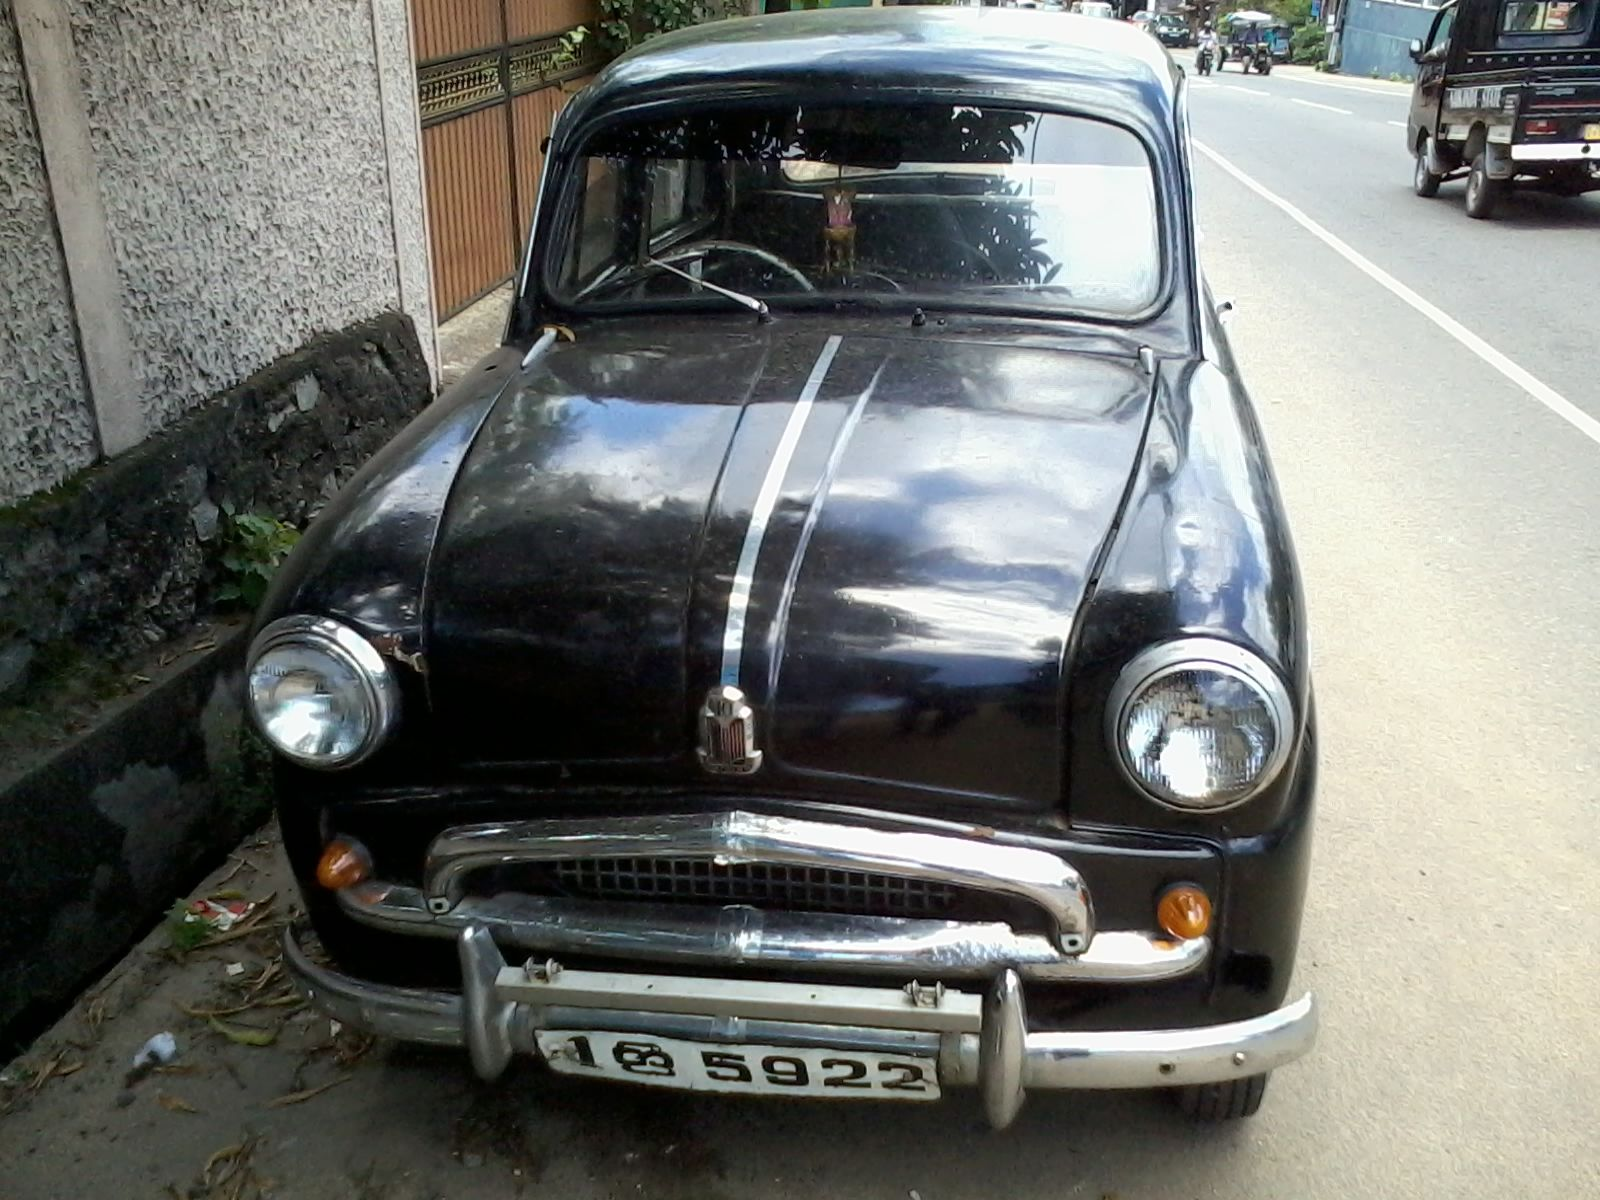 Standard English Car Made in India until the 80s. This was